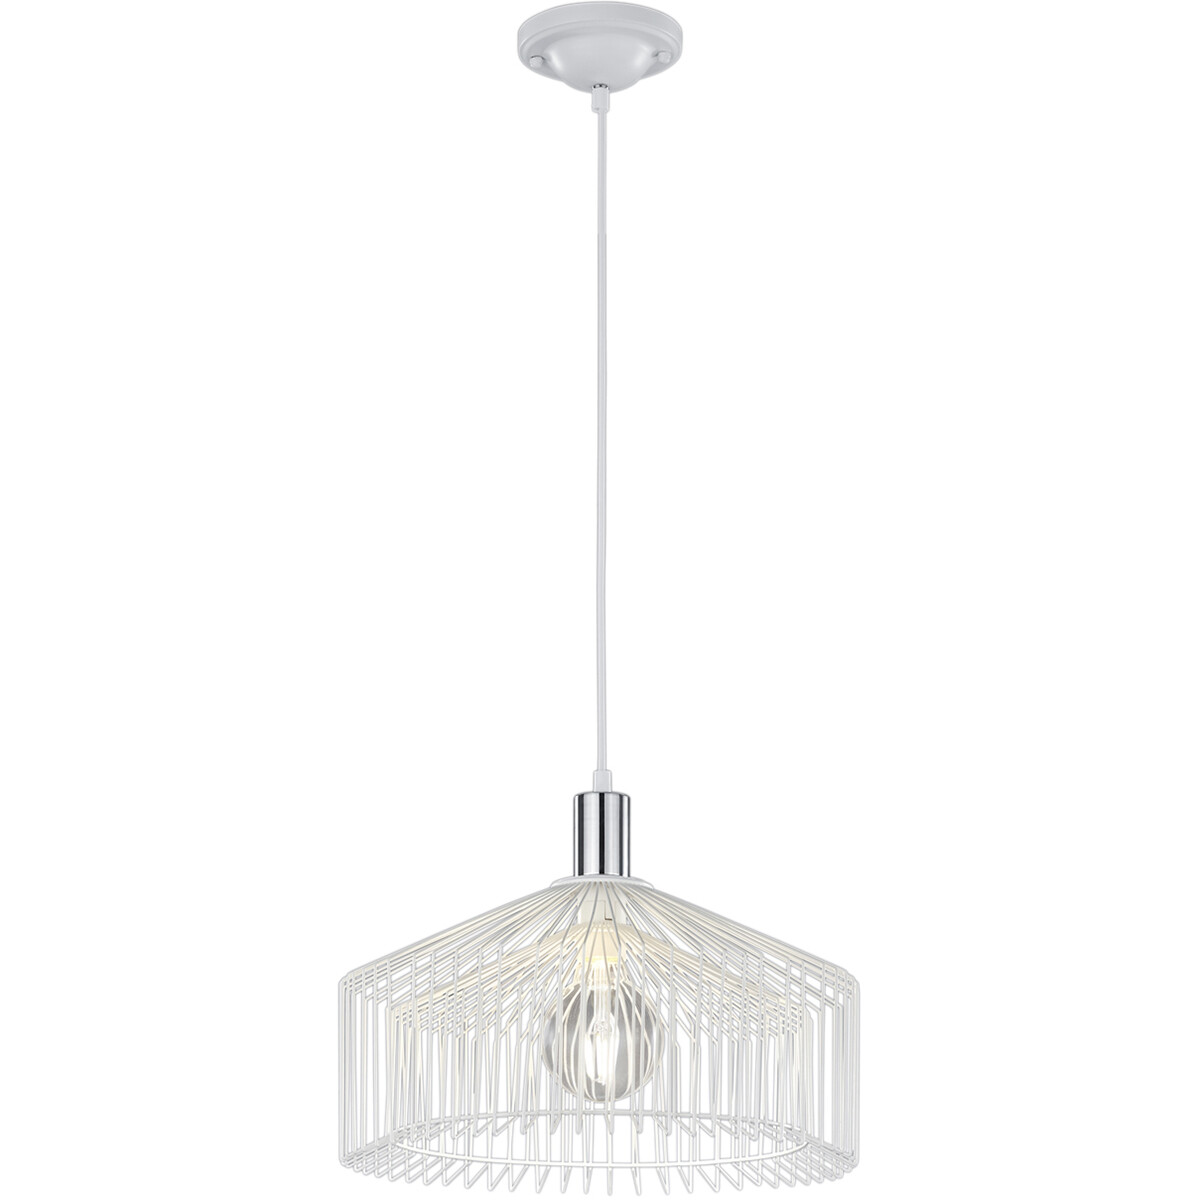 LED Hanglamp - Hangverlichting - Trion Tomno - E27 Fitting - Rond - Mat Wit - Aluminium